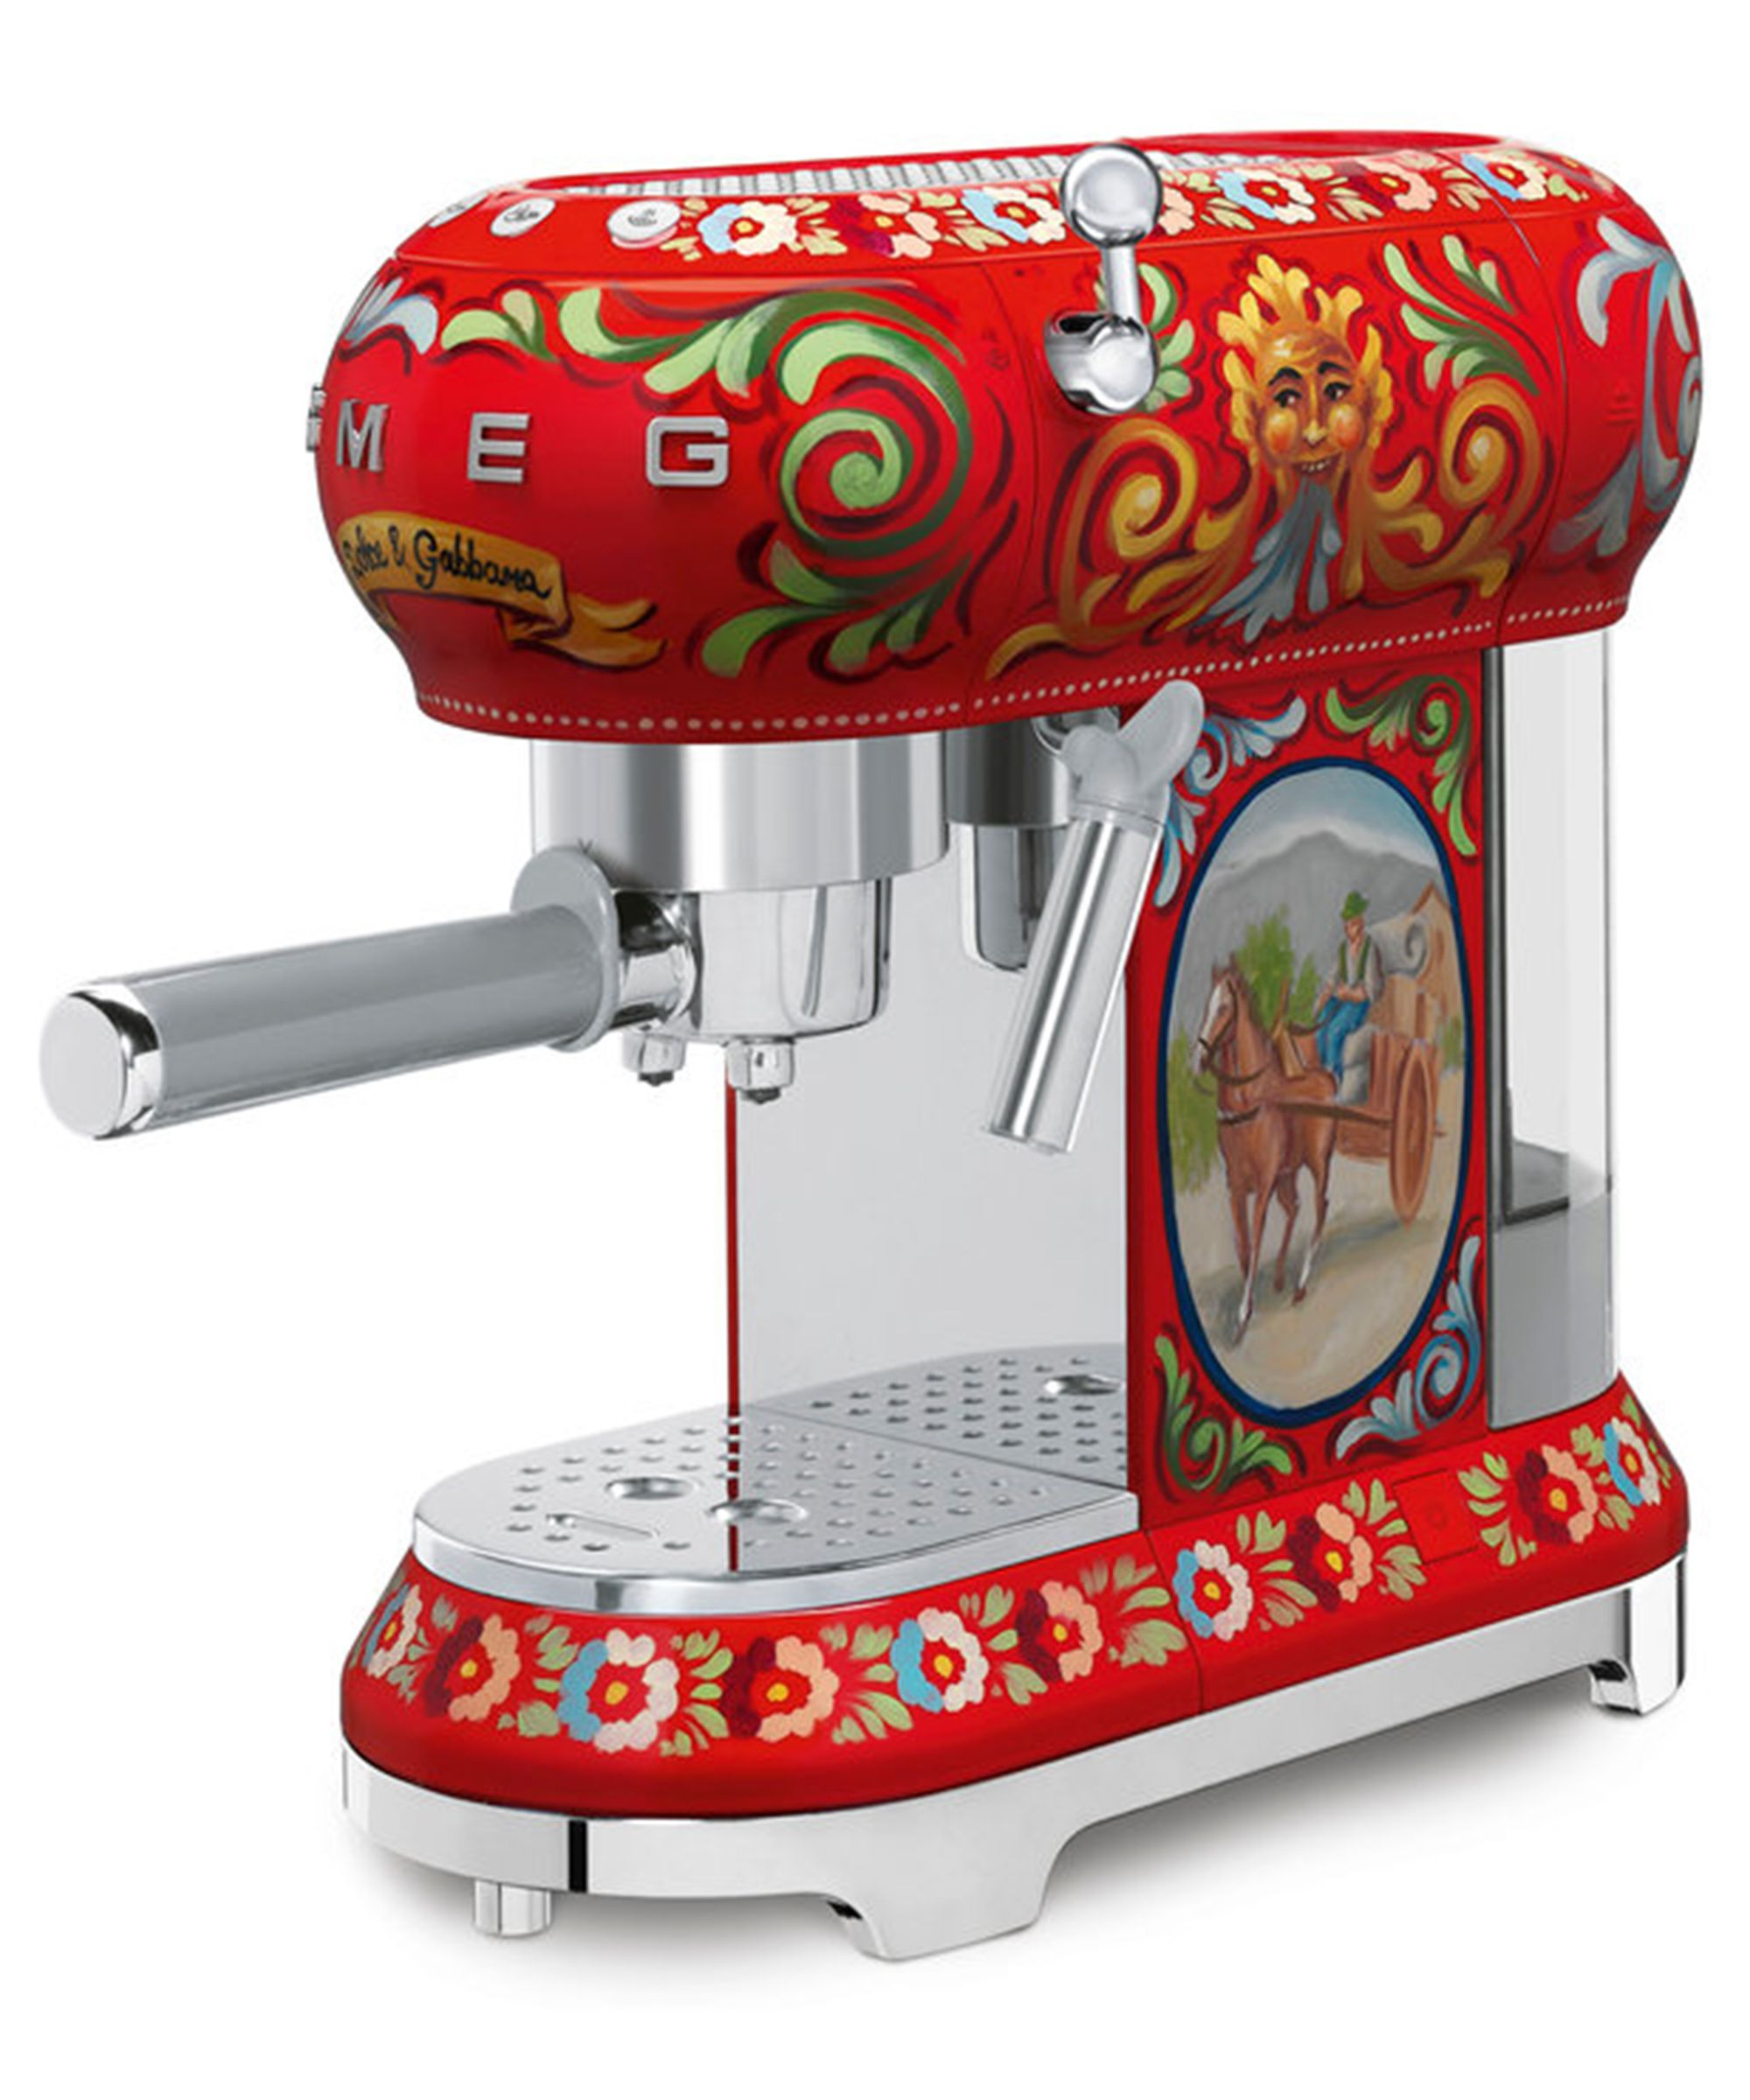 Smeg Kitchen Appliance Coffee Machine by Dolce & Gabbana